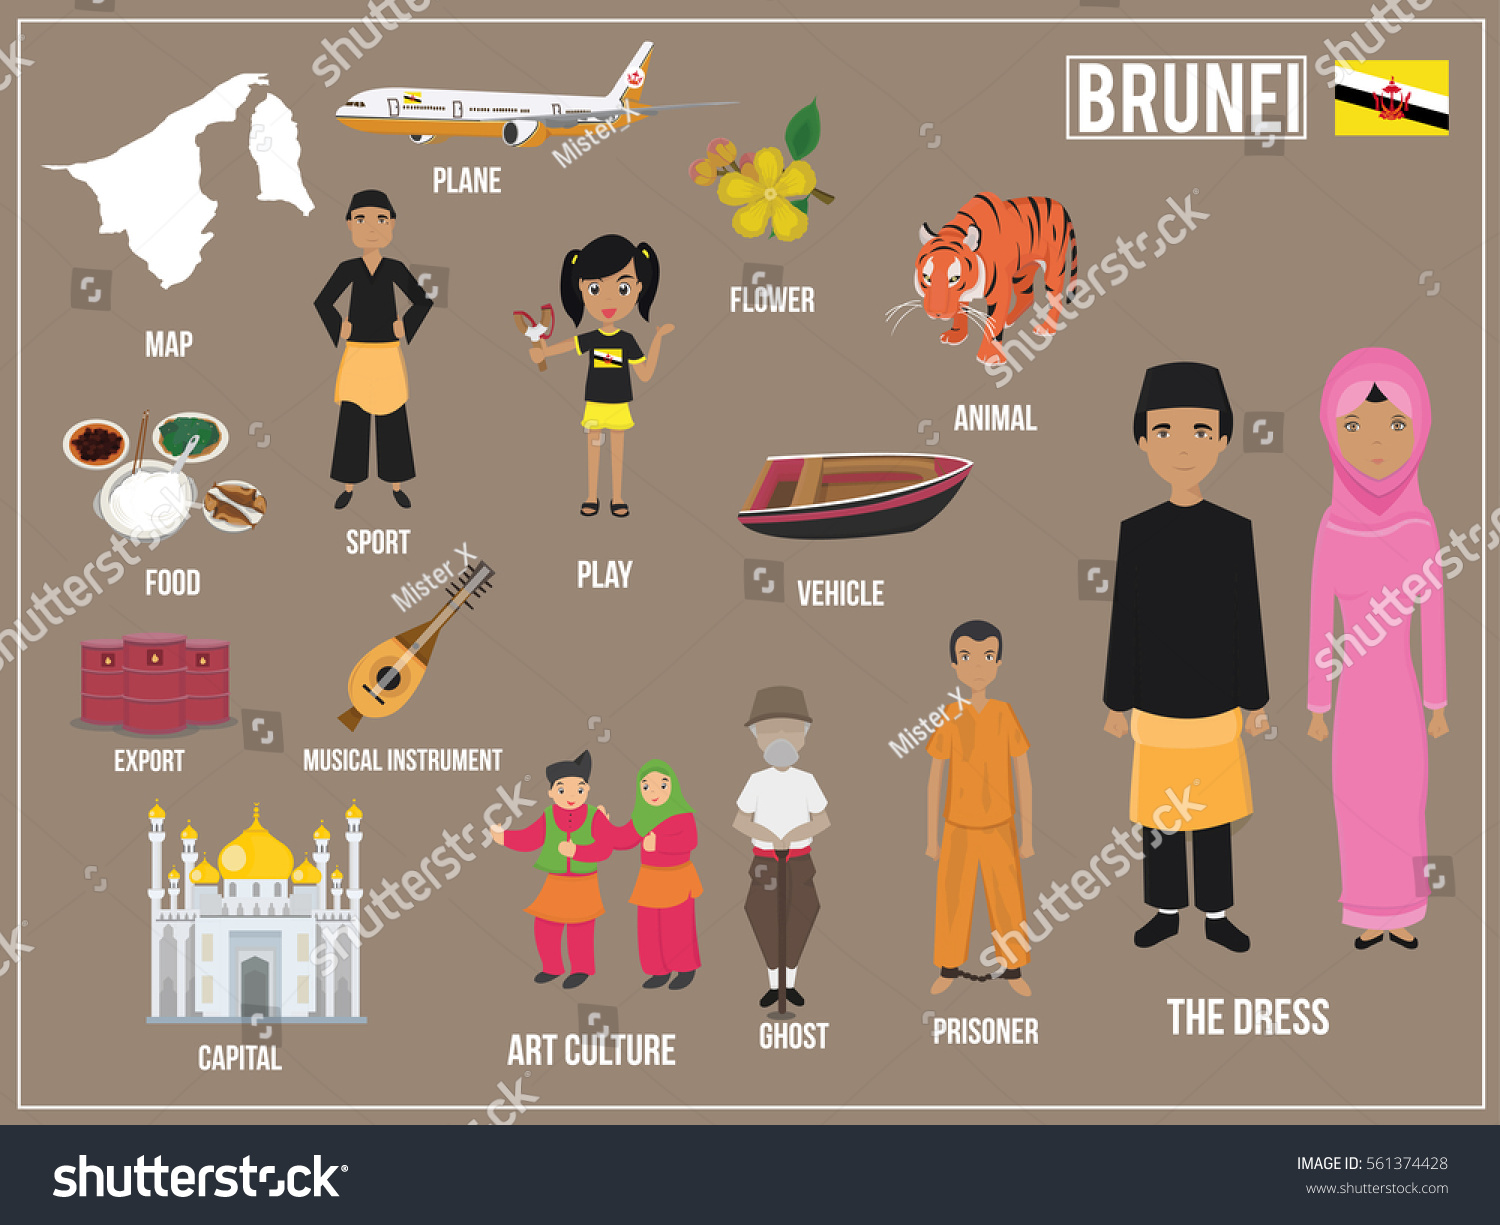 Vector Illustration Set Traditional Brunei Cultural Stock Vector